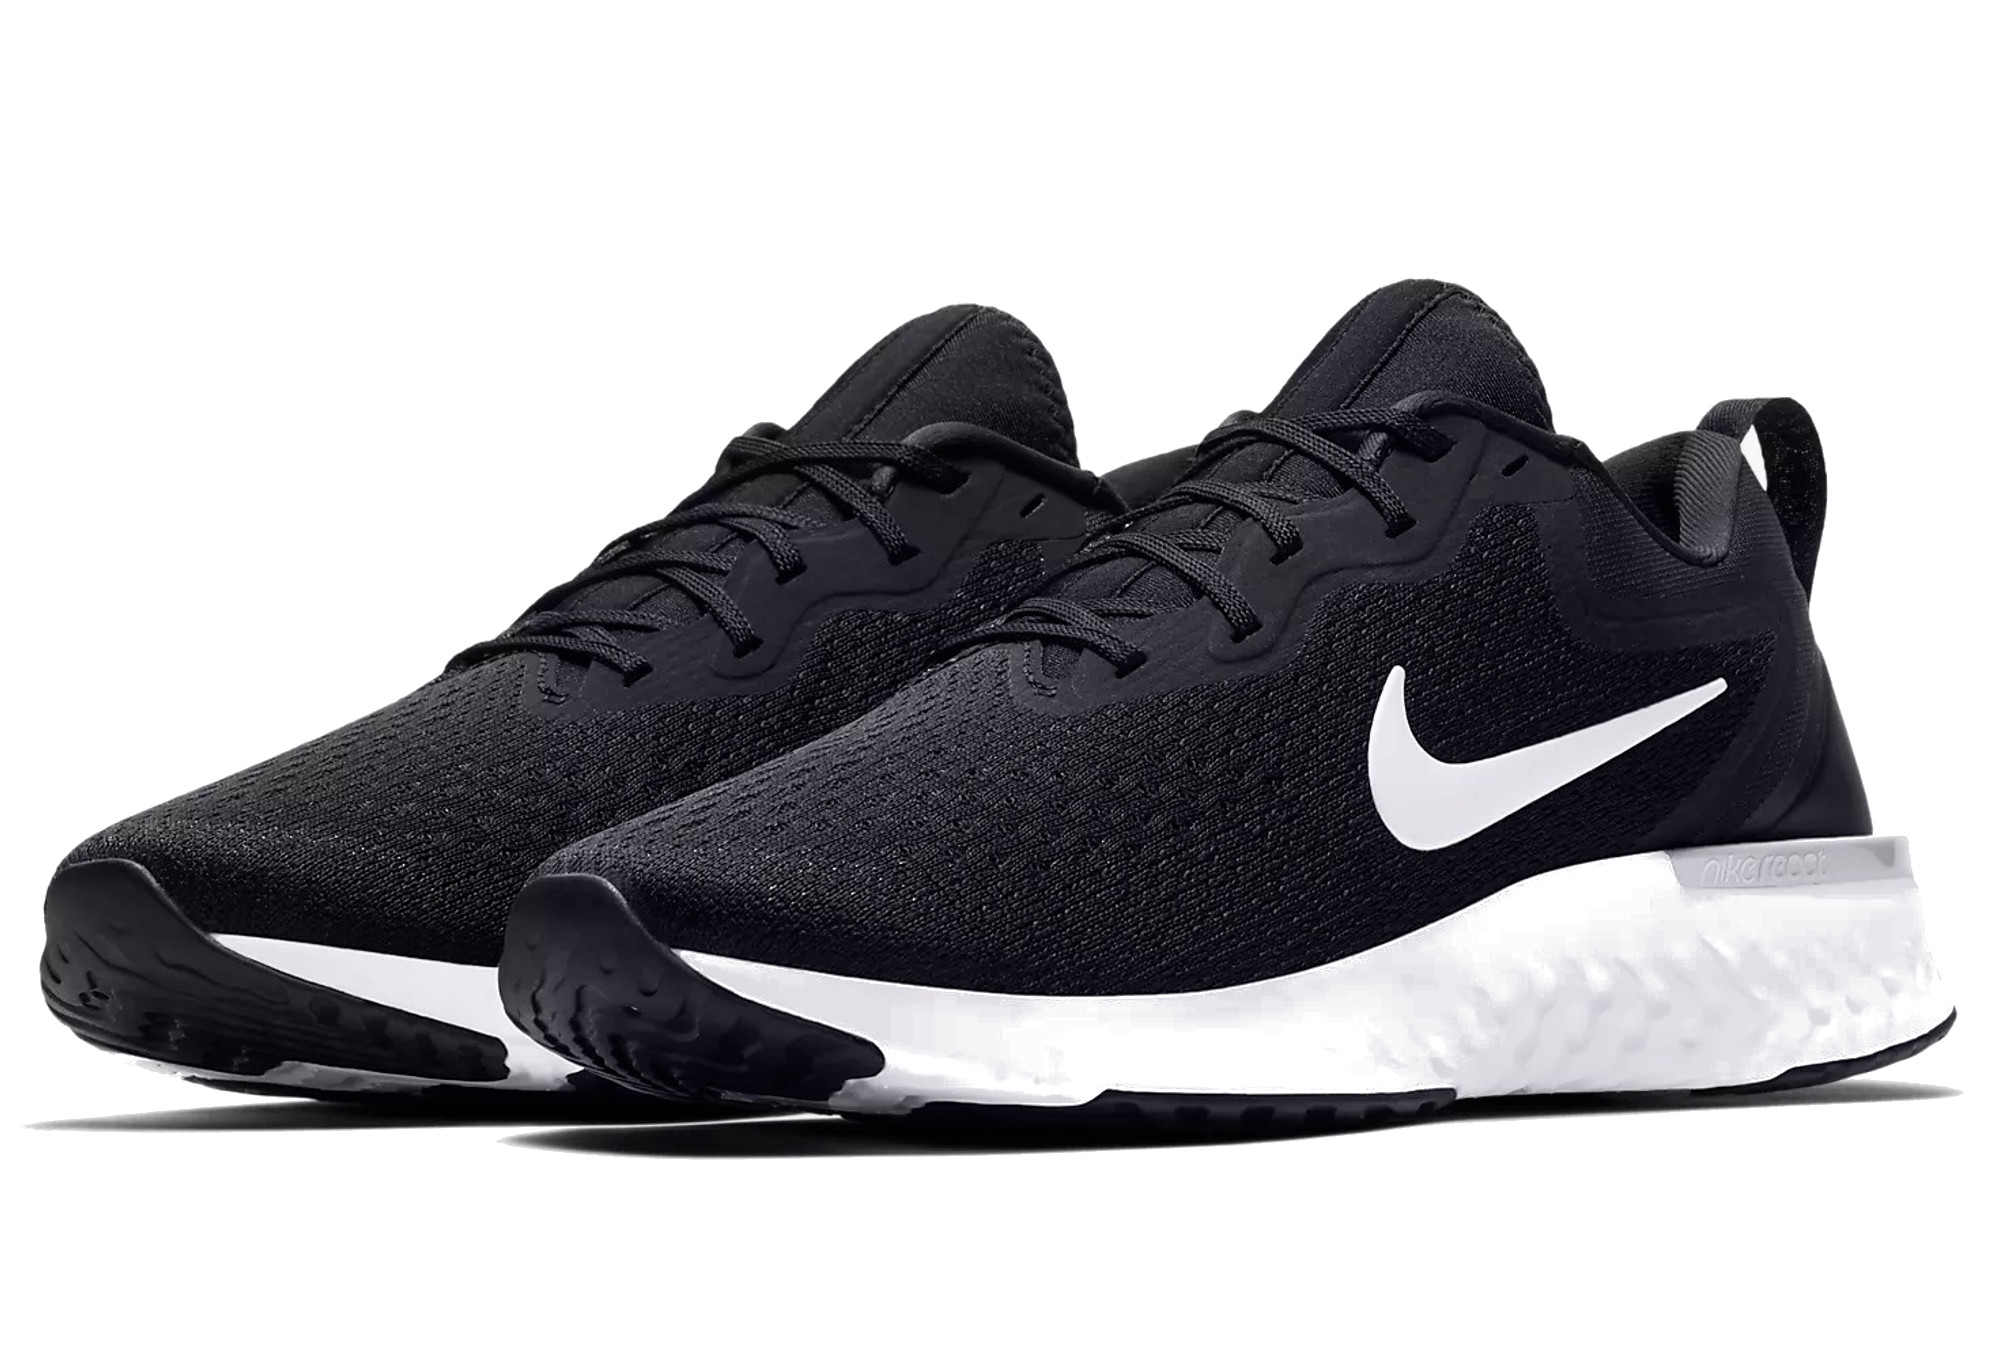 Nike Shoes Odyssey React Black White Hombres